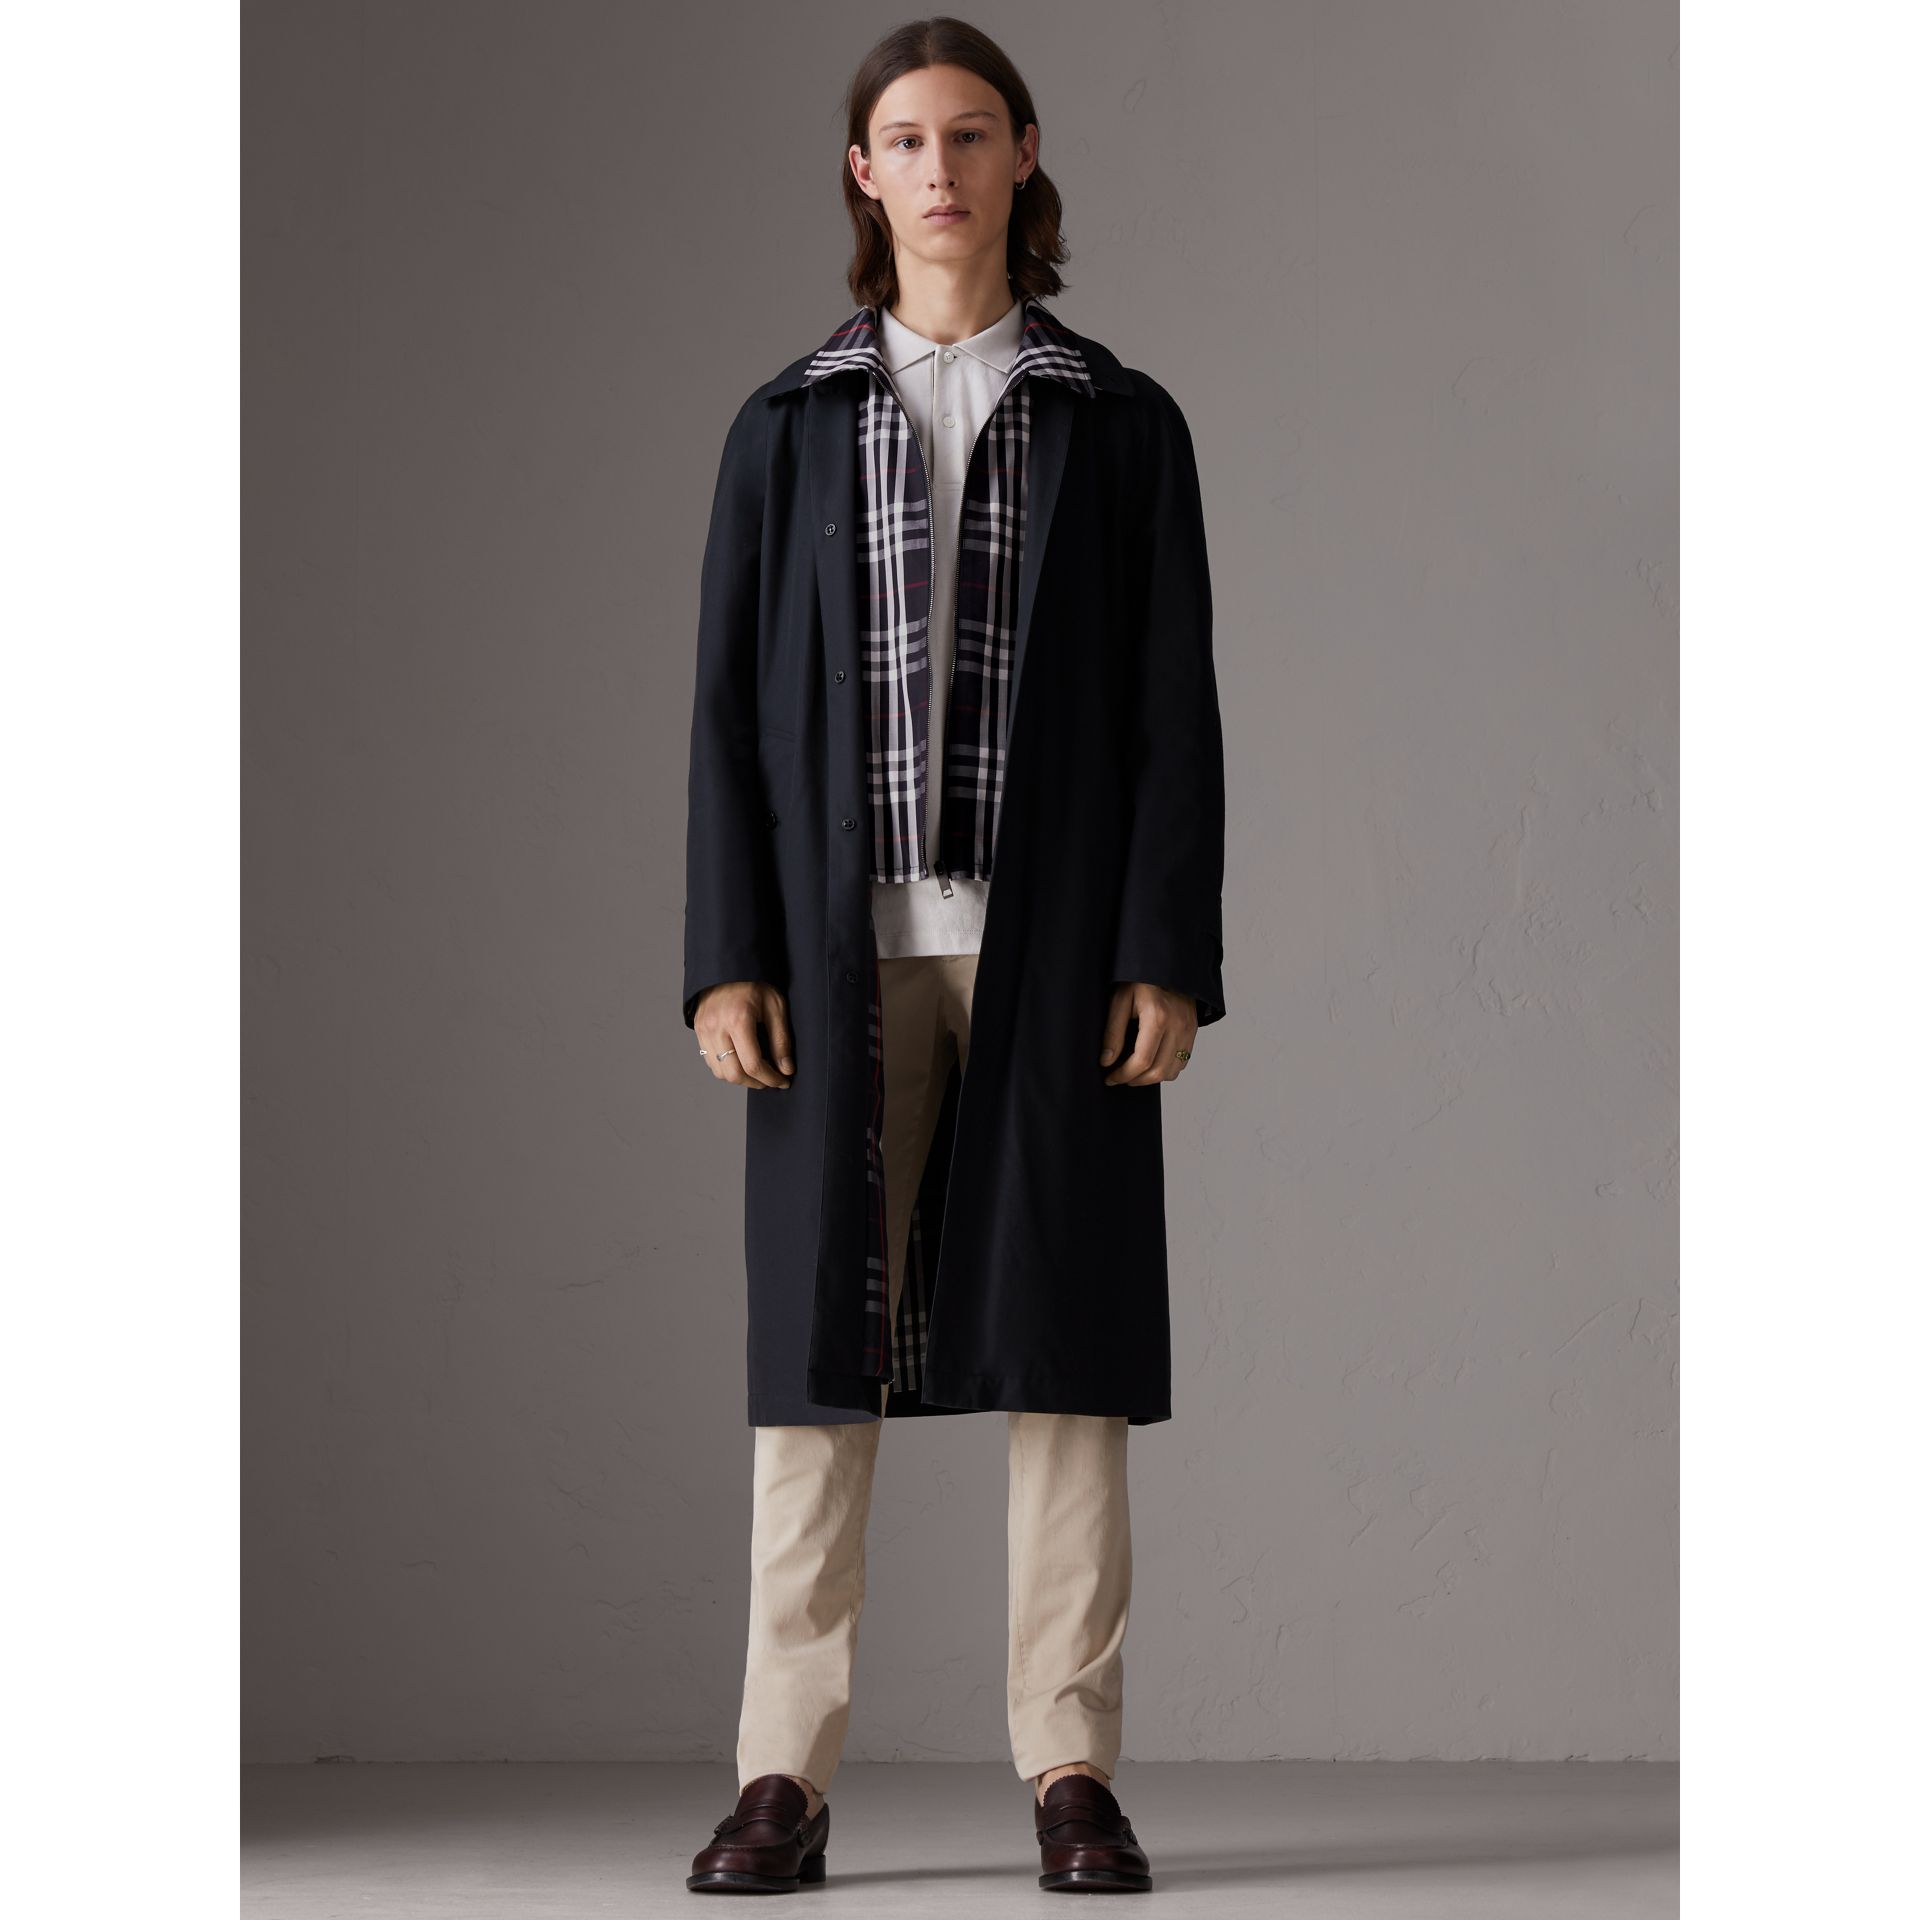 Gosha x Burberry Reconstructed Car Coat in Navy | Burberry - gallery image 0